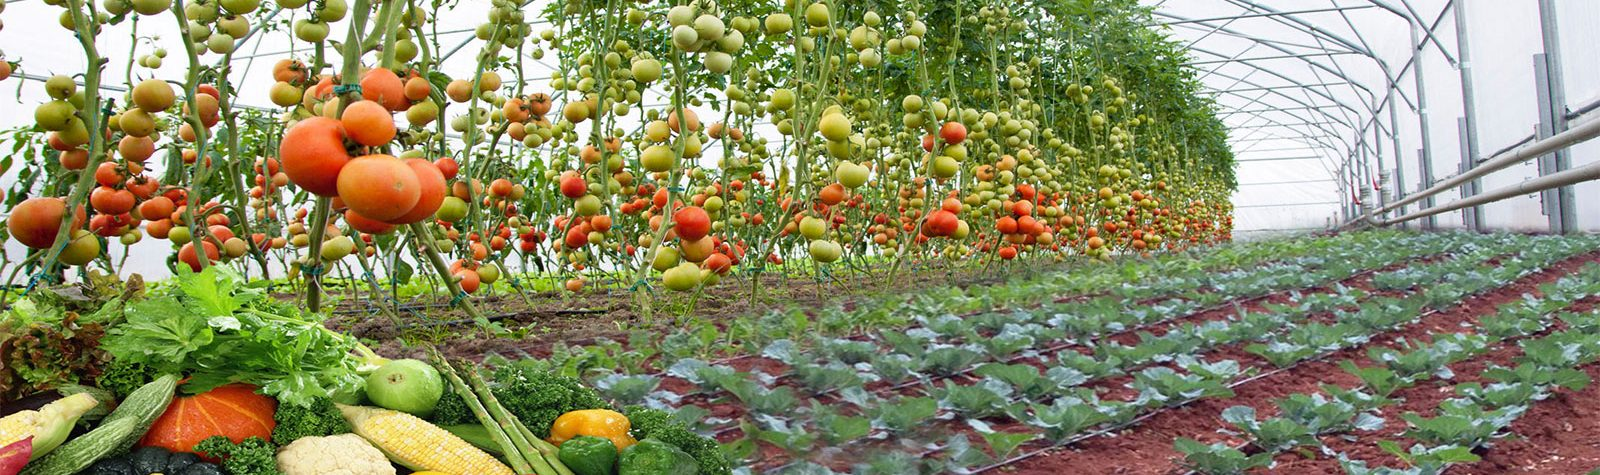 crop protection in kenya, tomato insects protection, foliar fertilizers in kenya, best crop sprays, crop pesticides control